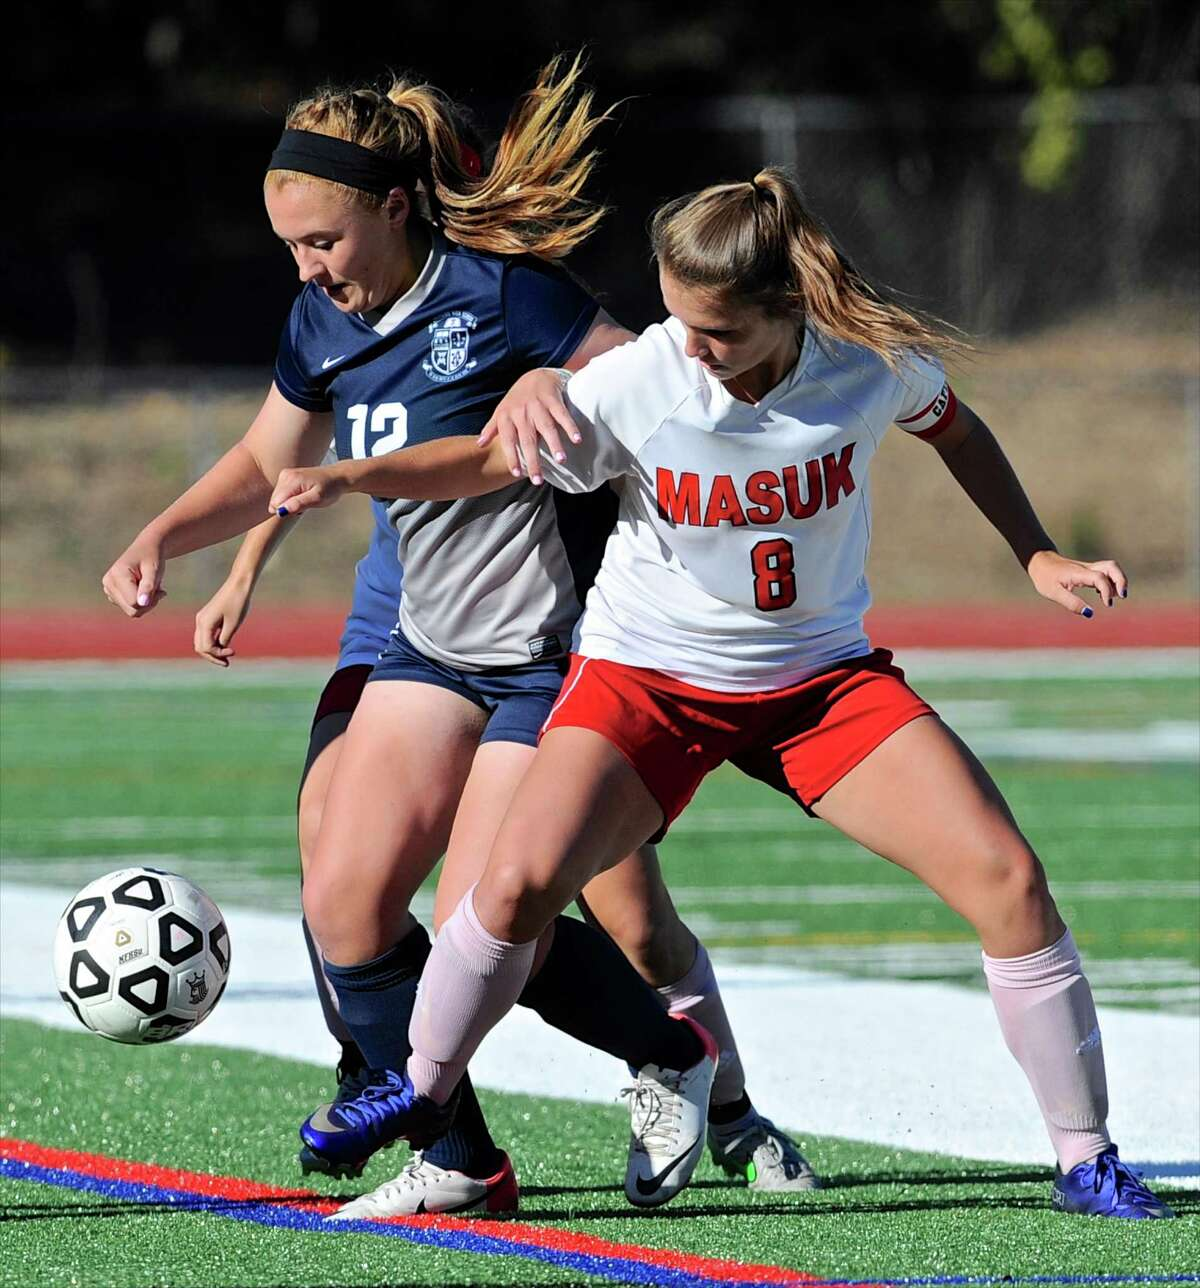 Immaculate's Kayla Lanza (12) and Masuk's Nikki Bisesi (8) battle over the ball in the SWC girls soccer game between Immaculate and Masuk high schools, on Tuesday afternoon, October 11, 2016, at Masuk High School, in Monroe, Conn.